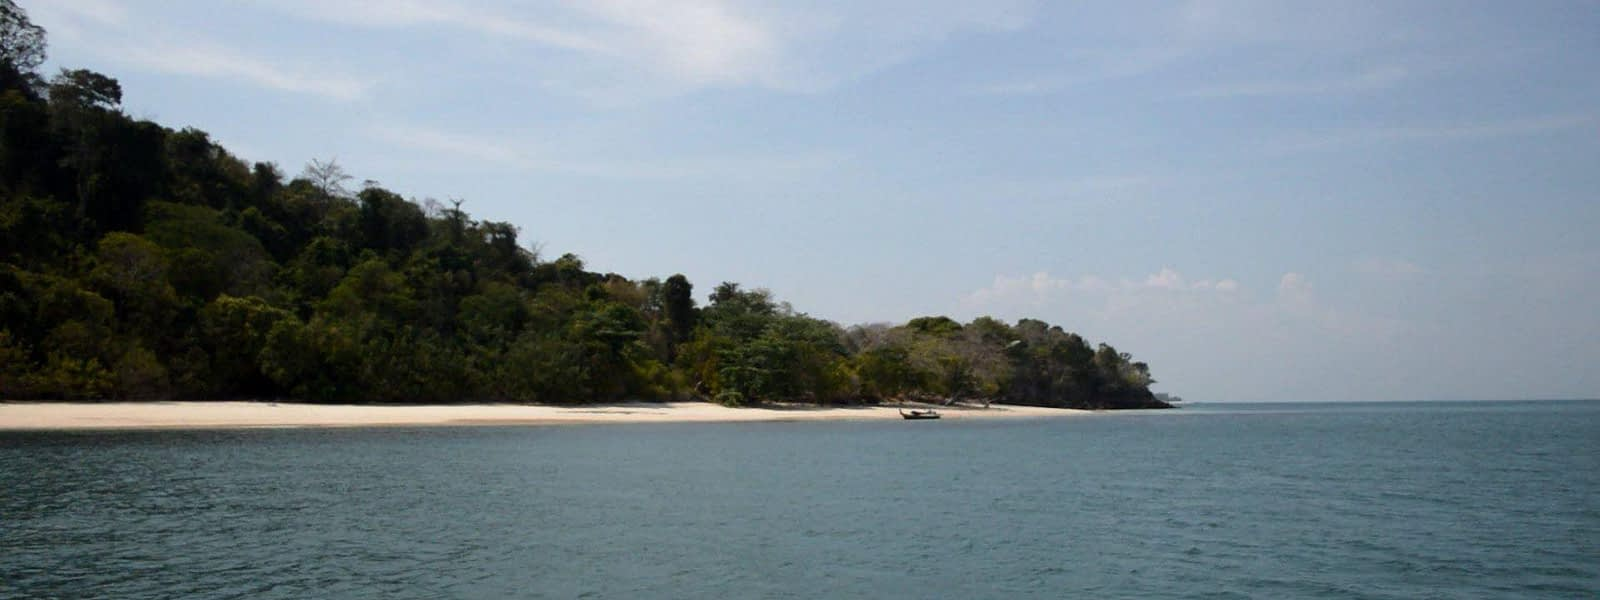 Thailand Secret Islands koh bulone pai beach